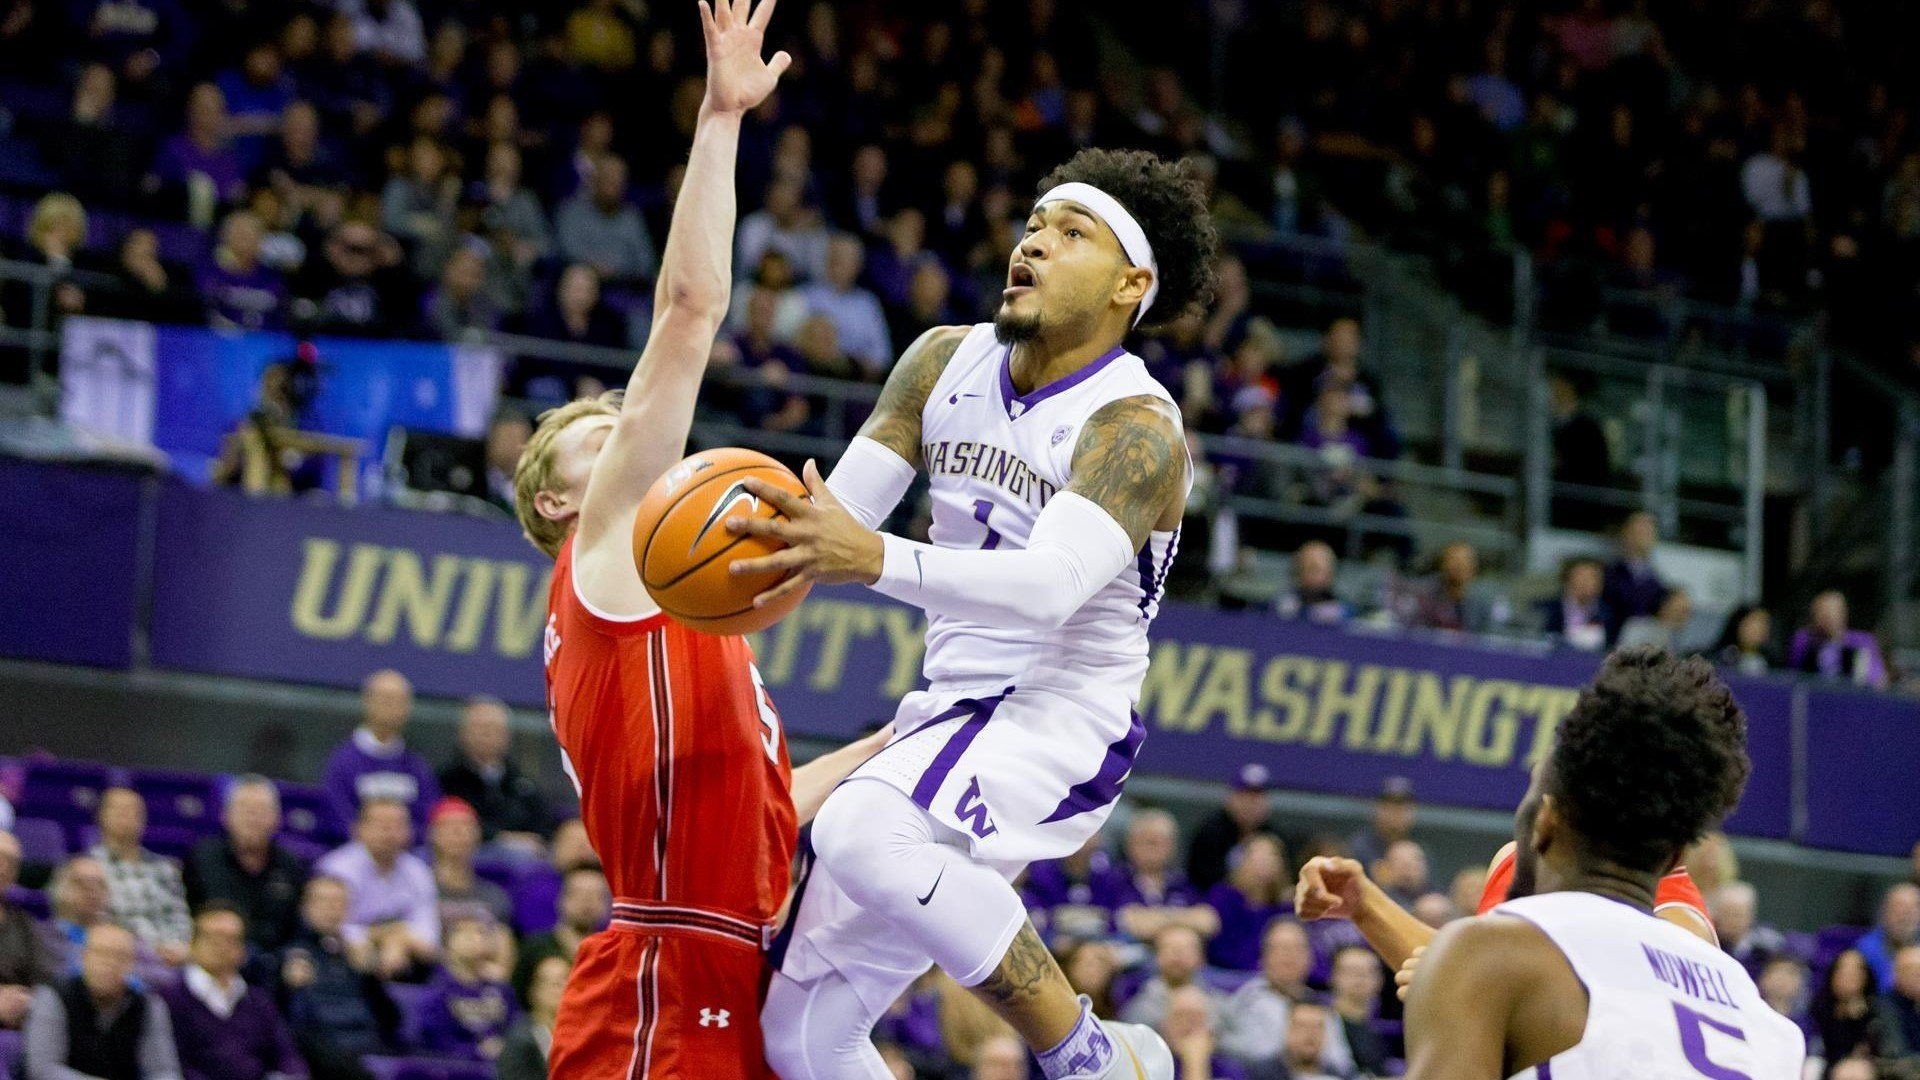 Photo: UW Athletics